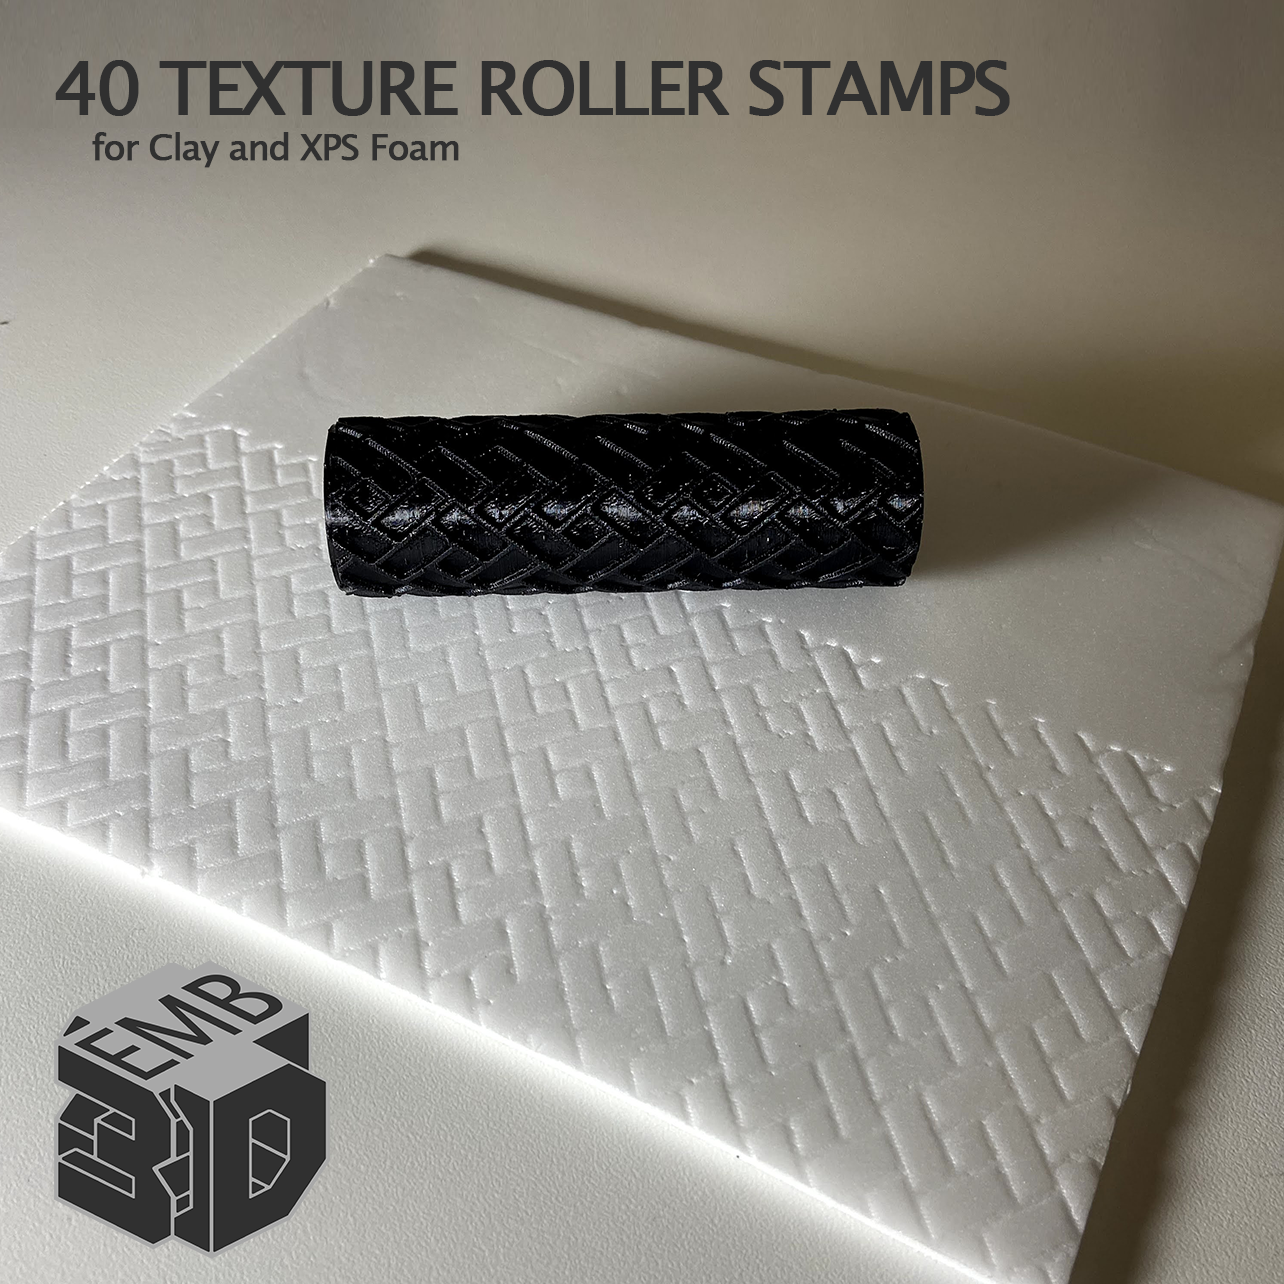 XPS5.png Download STL file 40 Clay and XPS Foam Texture Roller Stamp • 3D printer object, emboyd